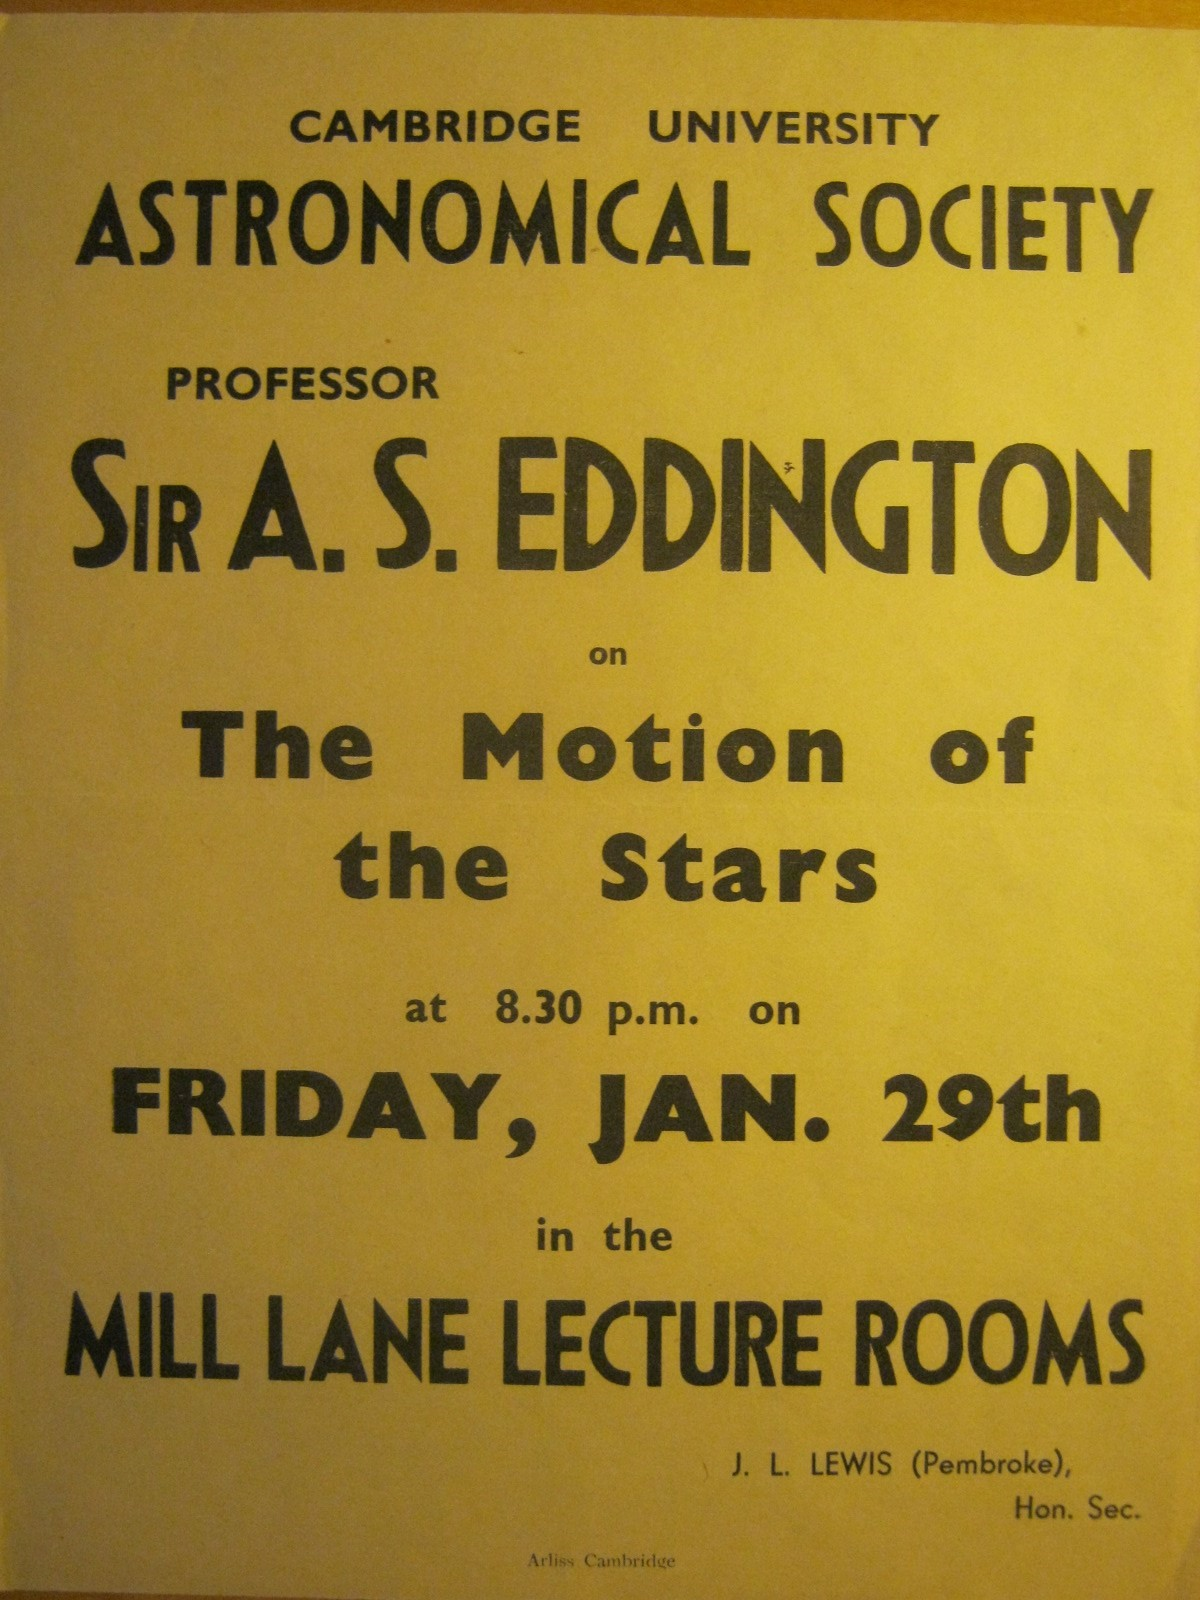 Poster for Arthur Eddington talk 1943